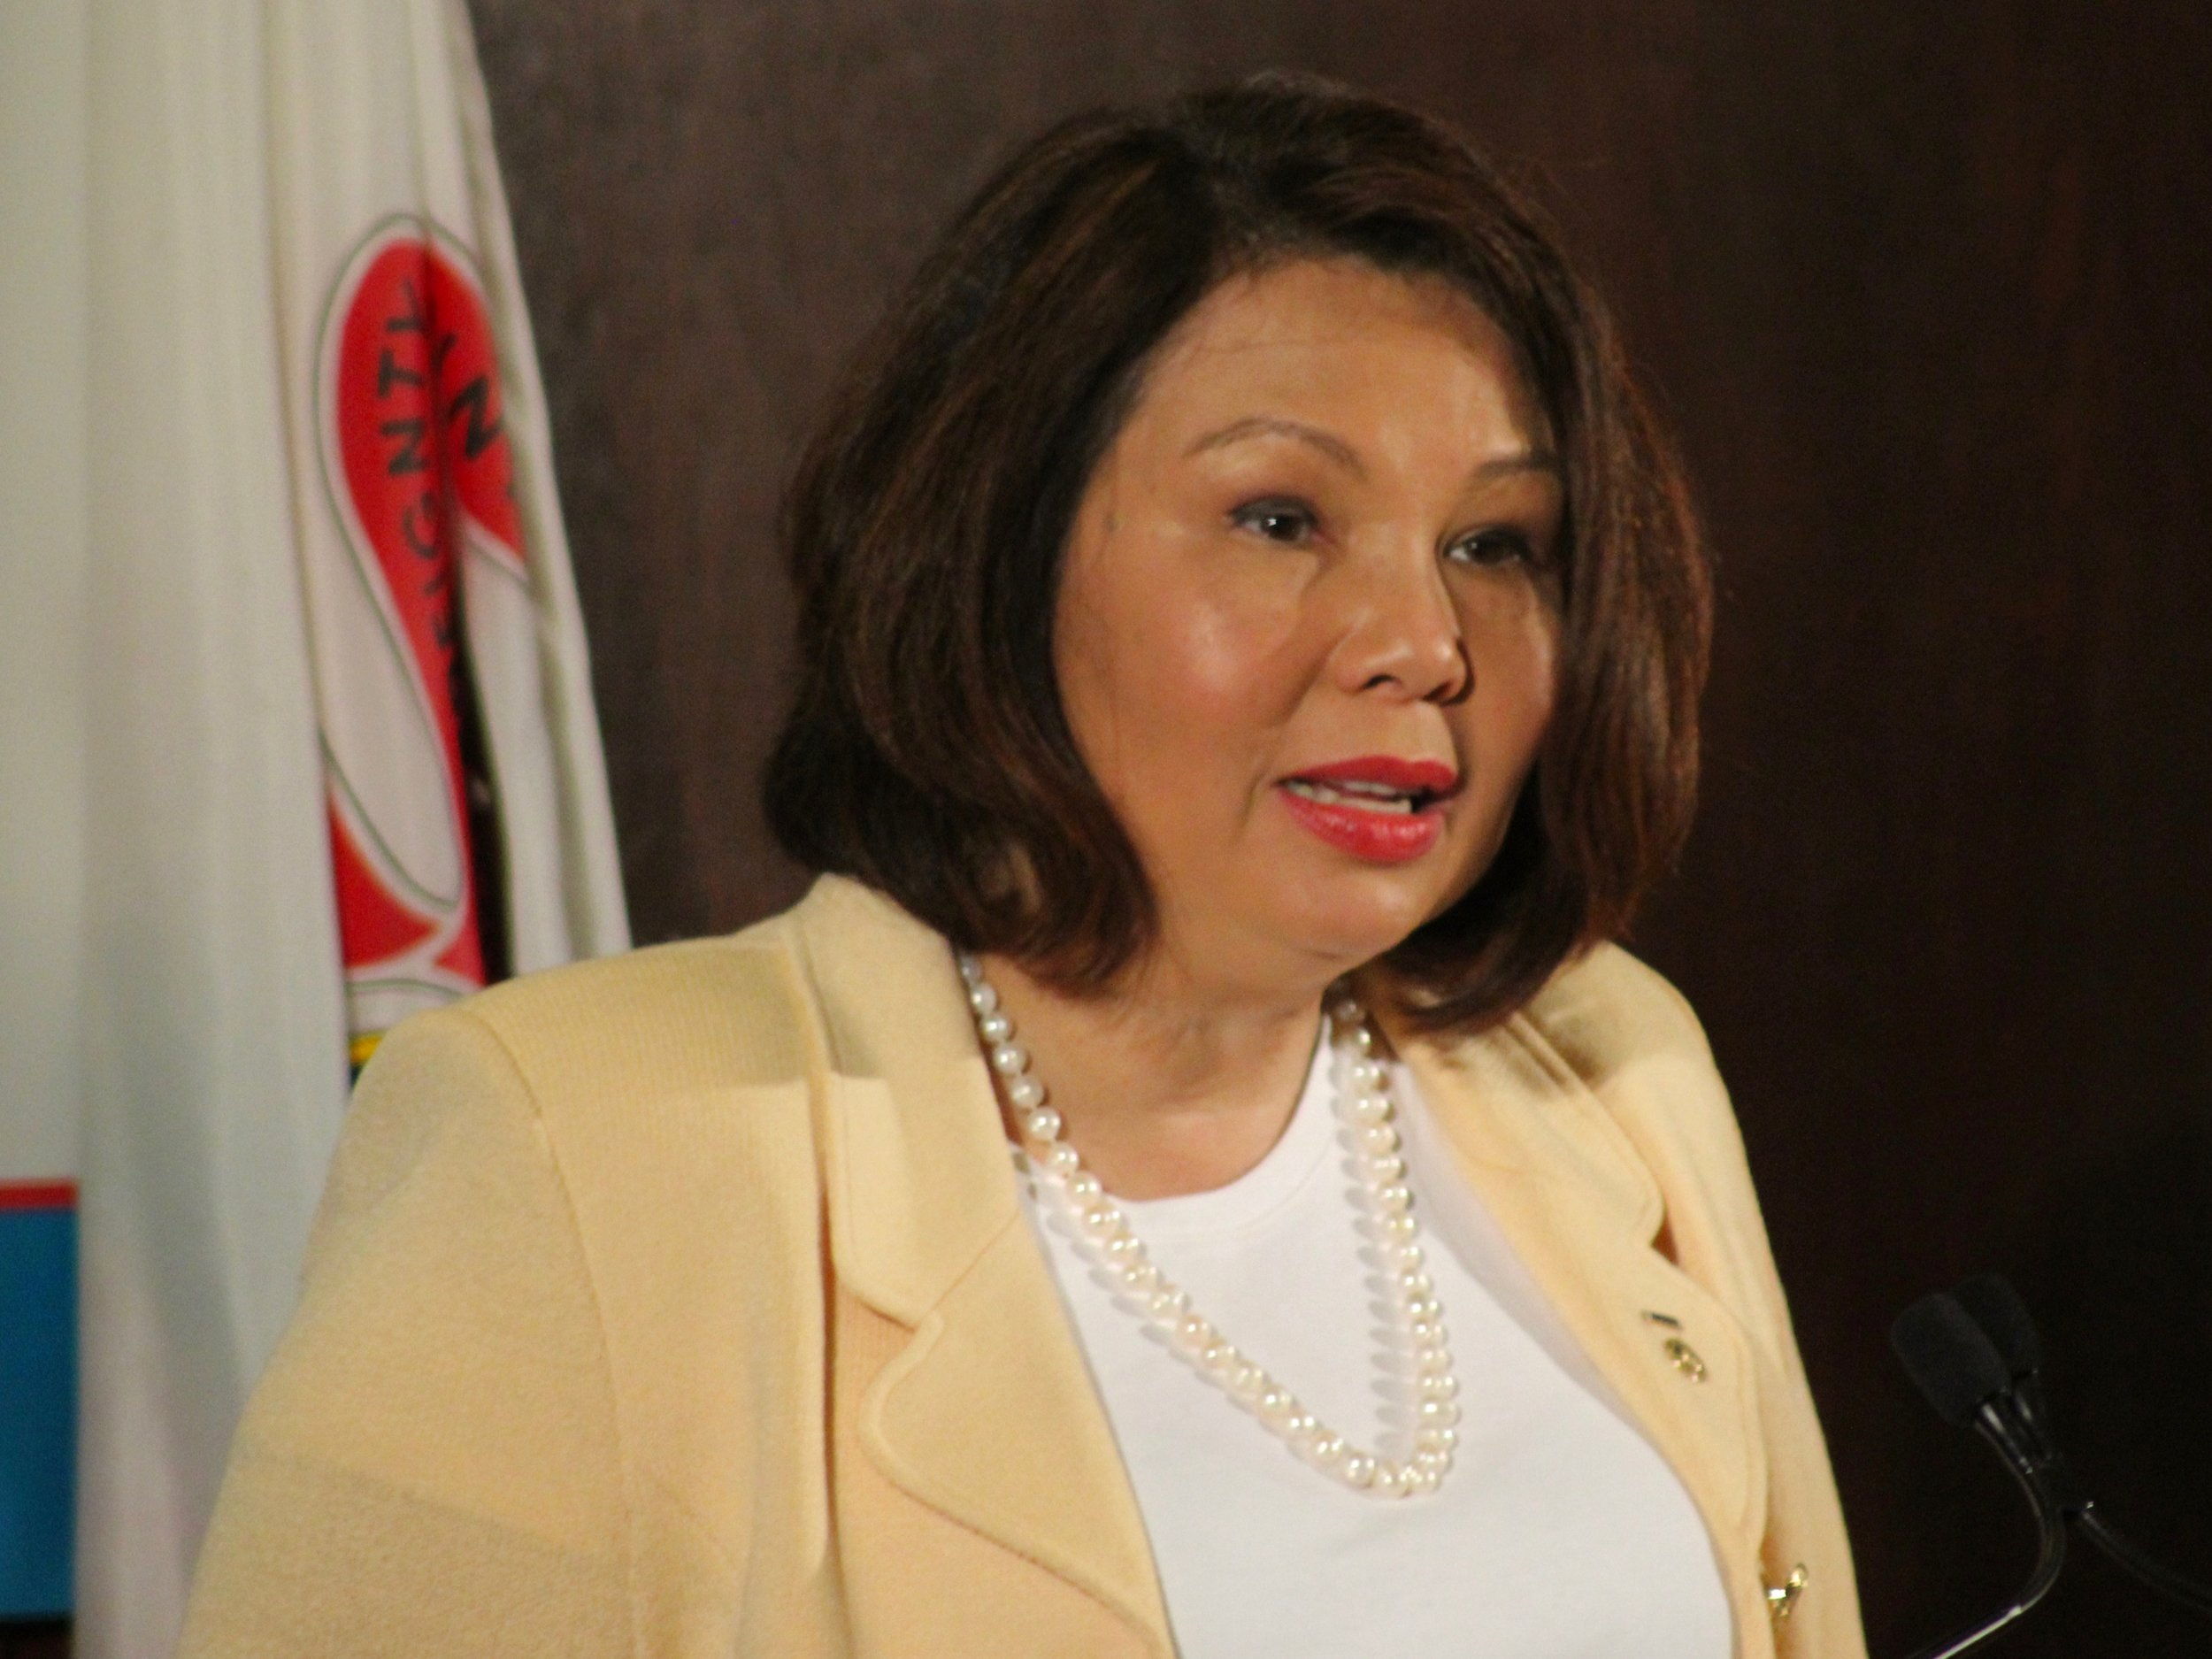 Sen. Tammy Duckworth said the issues of infrastructure and national security are linked to education and health care in a speech Wednesday at the City Club of Chicago. (One Illinois/Ted Cox)